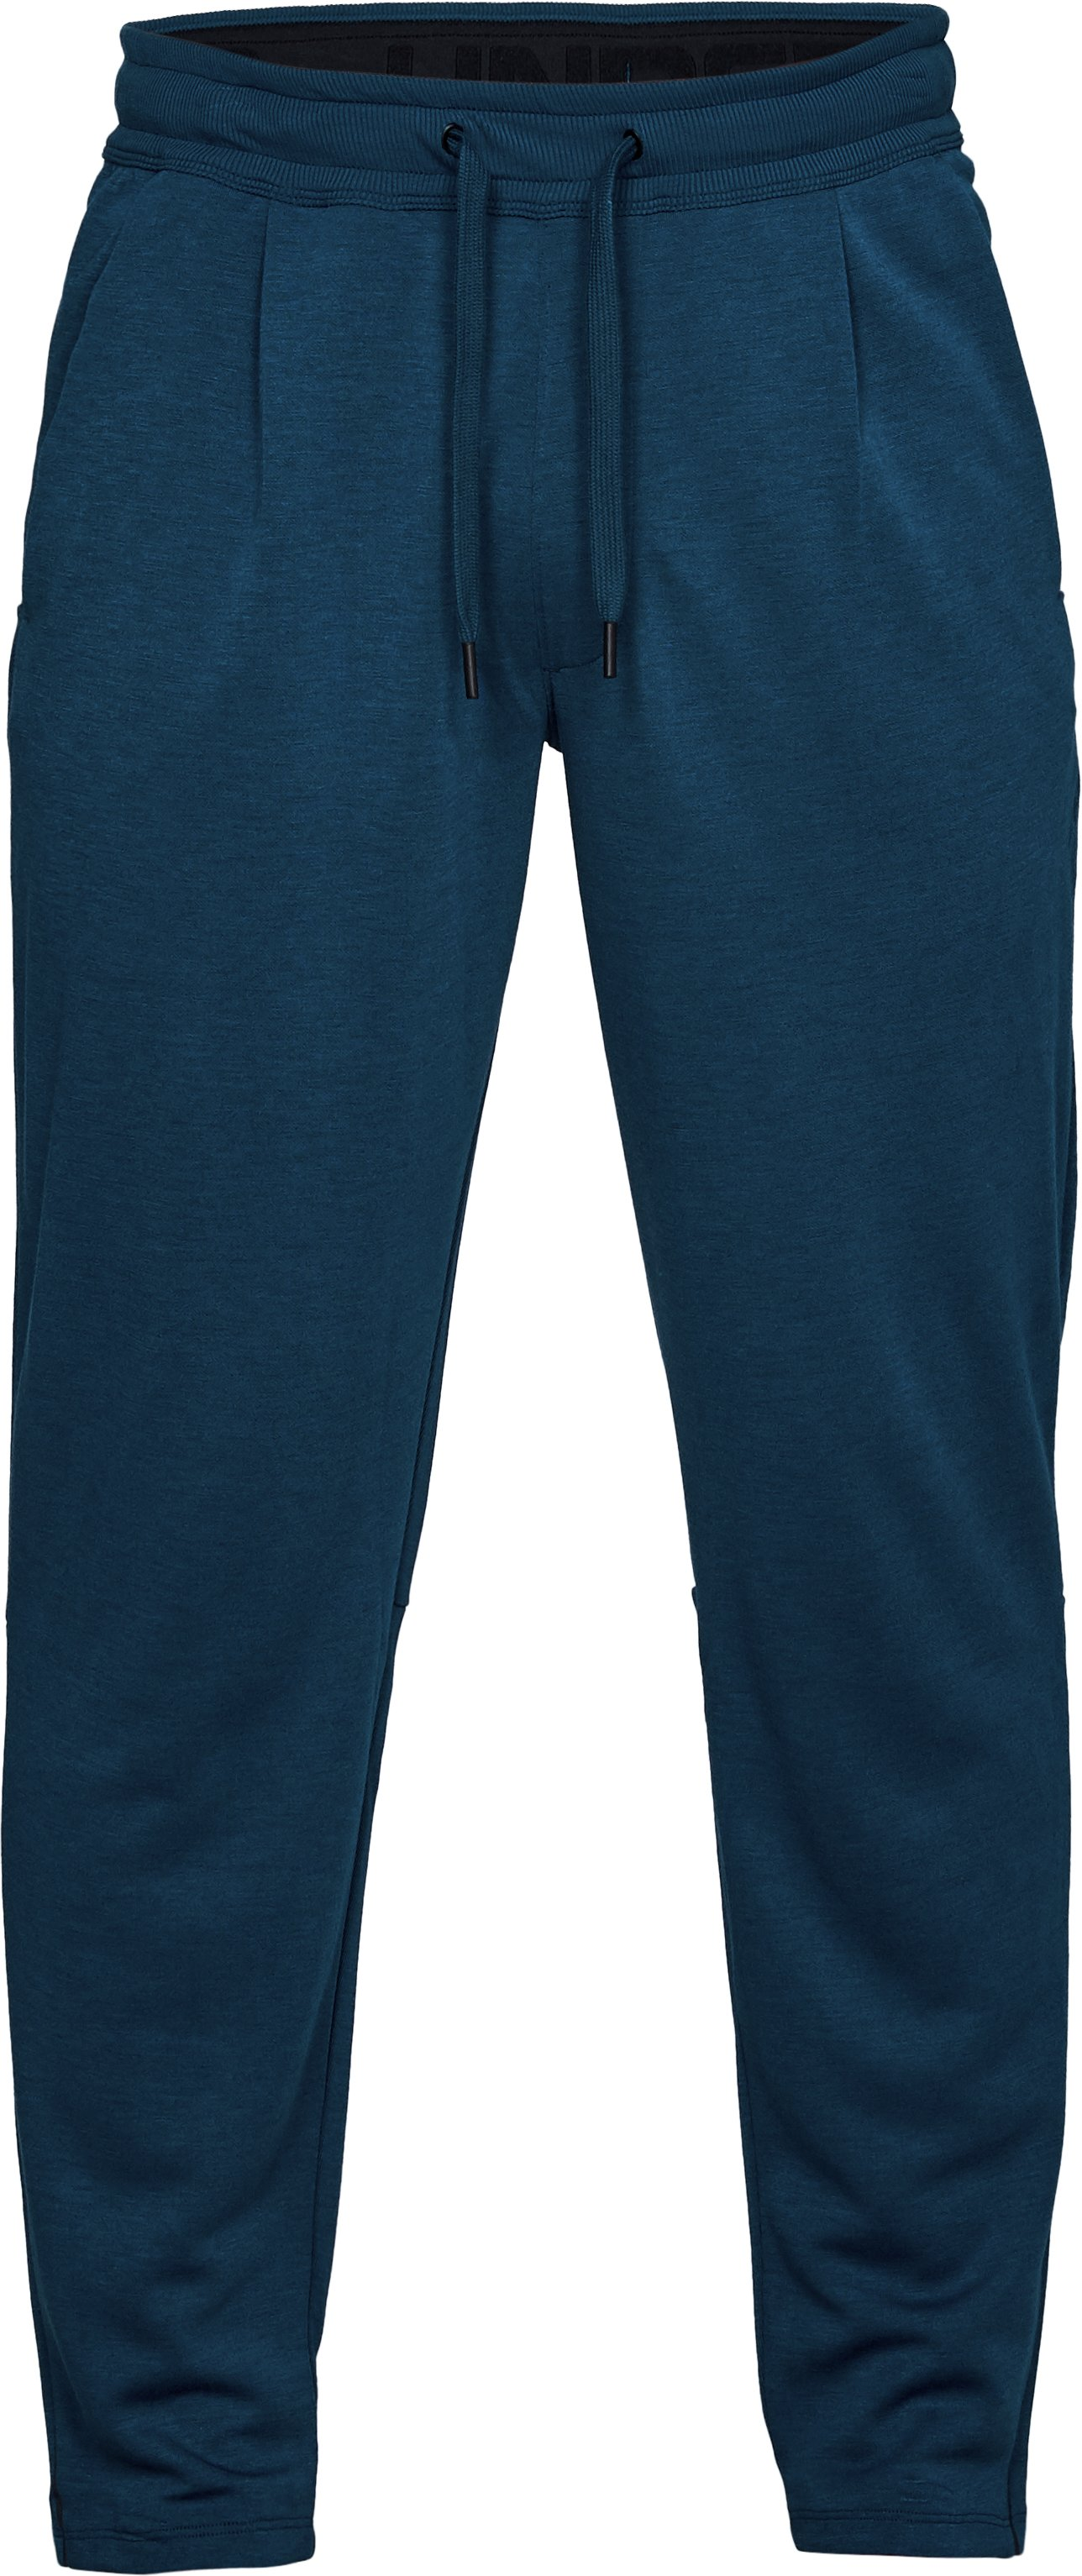 Men's Athlete Recovery Sleepwear™ Ultra Comfort Heavyweight Pants, Techno Teal,